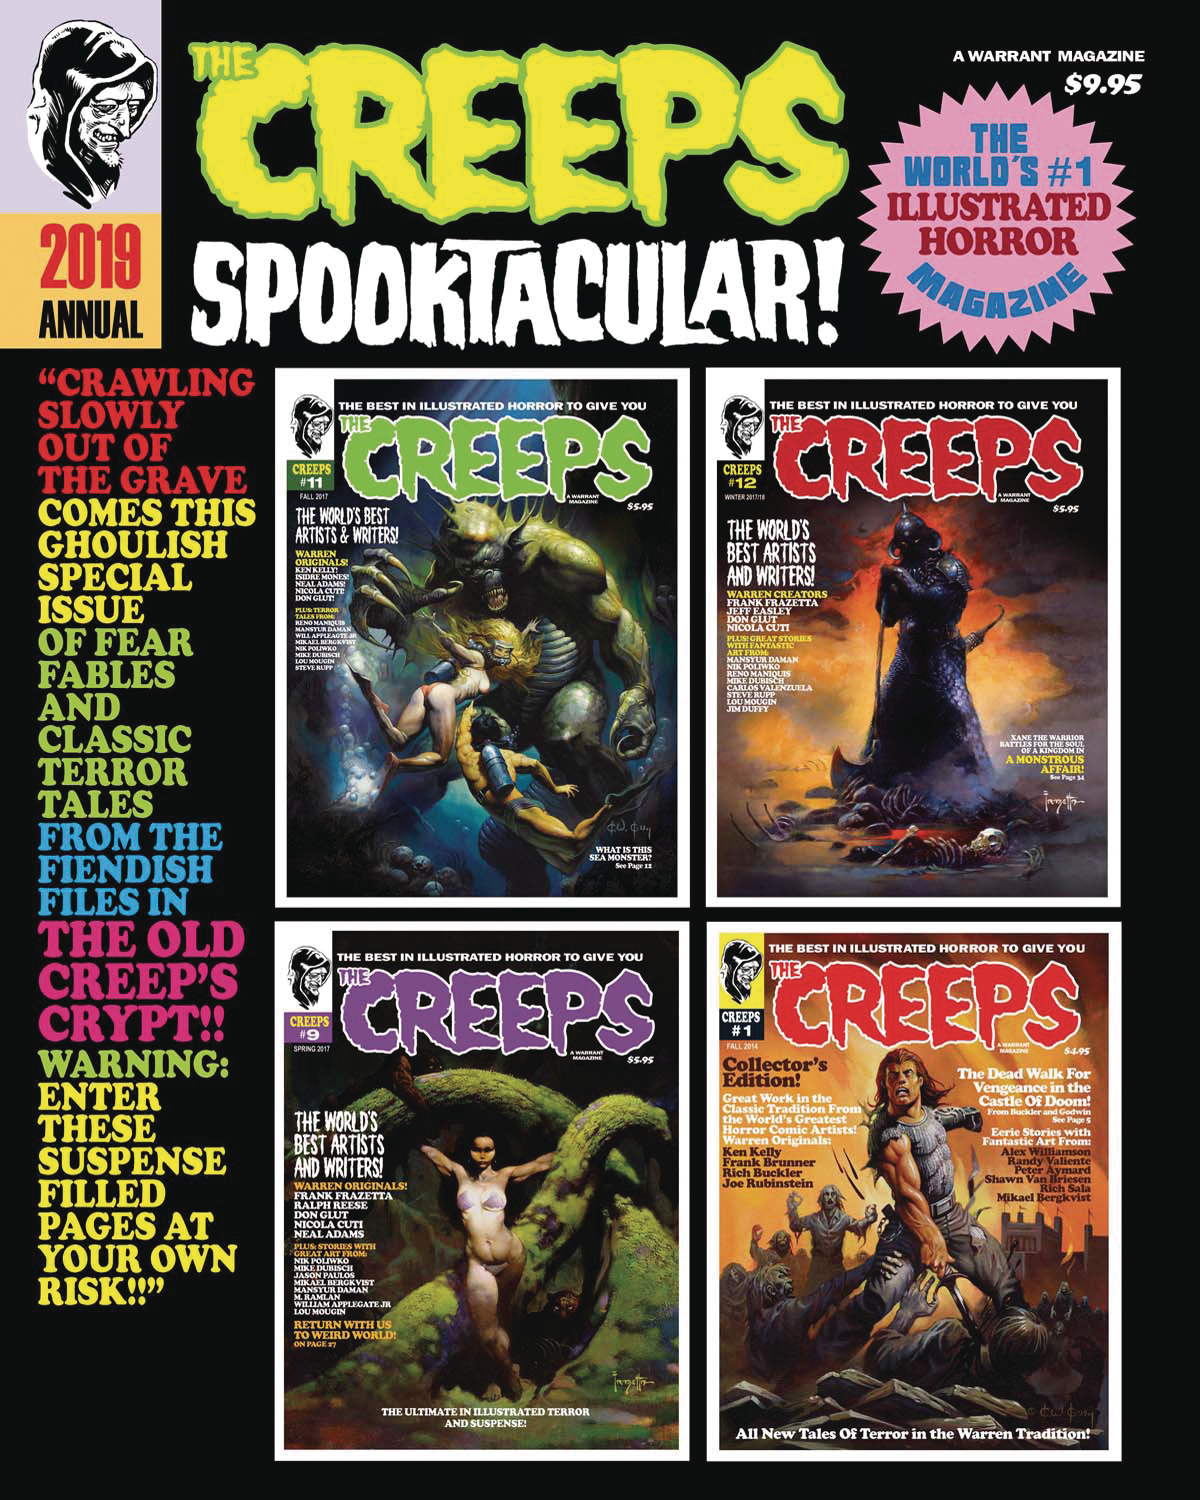 THE CREEPS ANNUAL #1 2019 SPOOKTACULAR (MR)